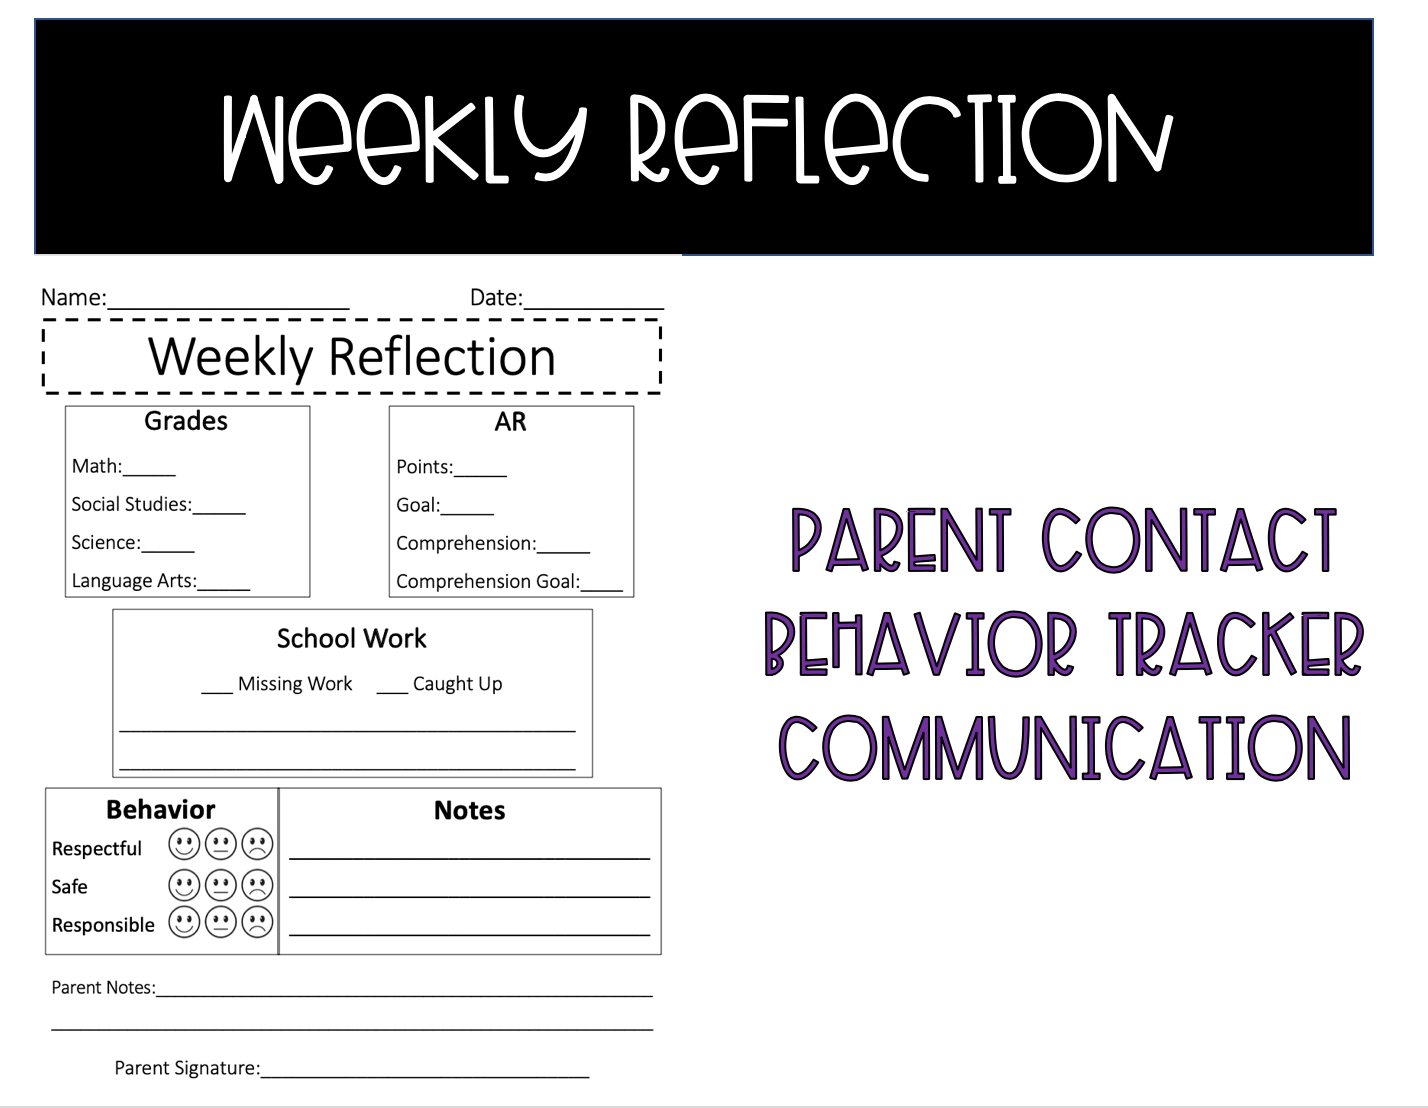 Weekly Reflection Sheet In